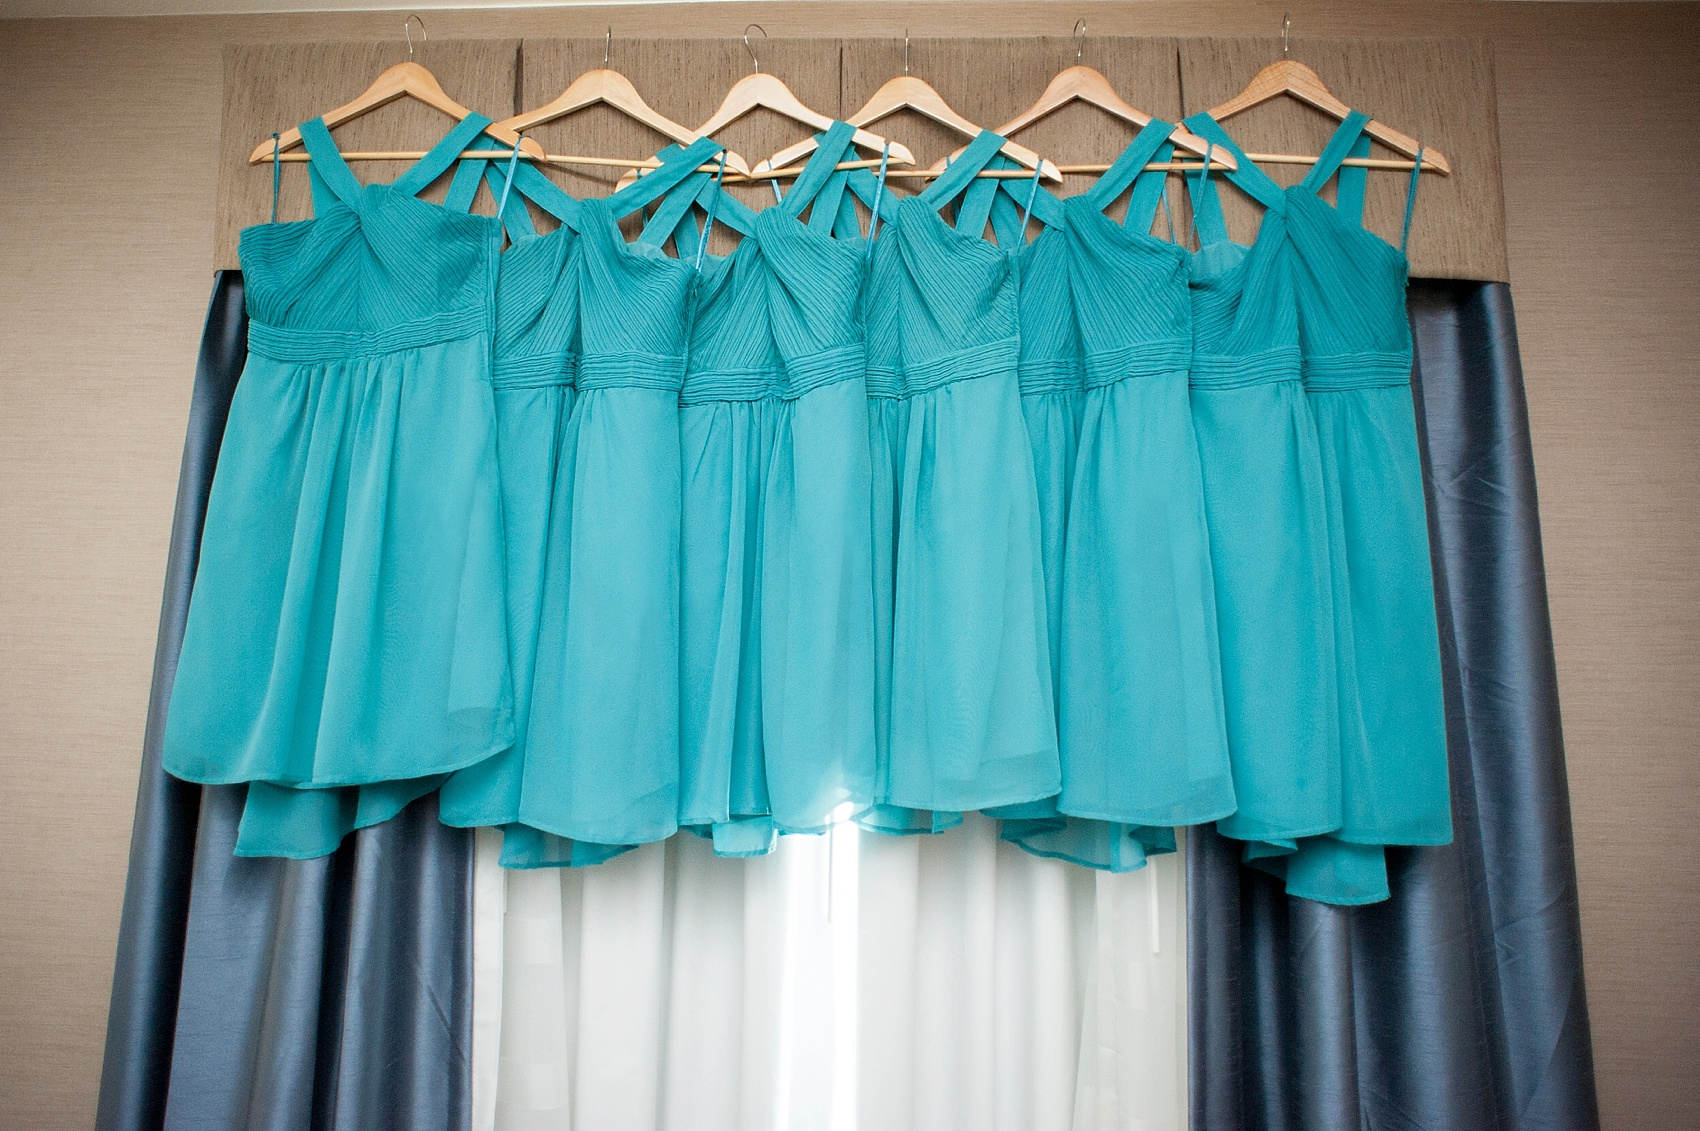 Teal bridesmaids dresses for a Hollow Brook Golf Club wedding. Photos by Mikkel Paige Photography, New York Wedding Photographer.